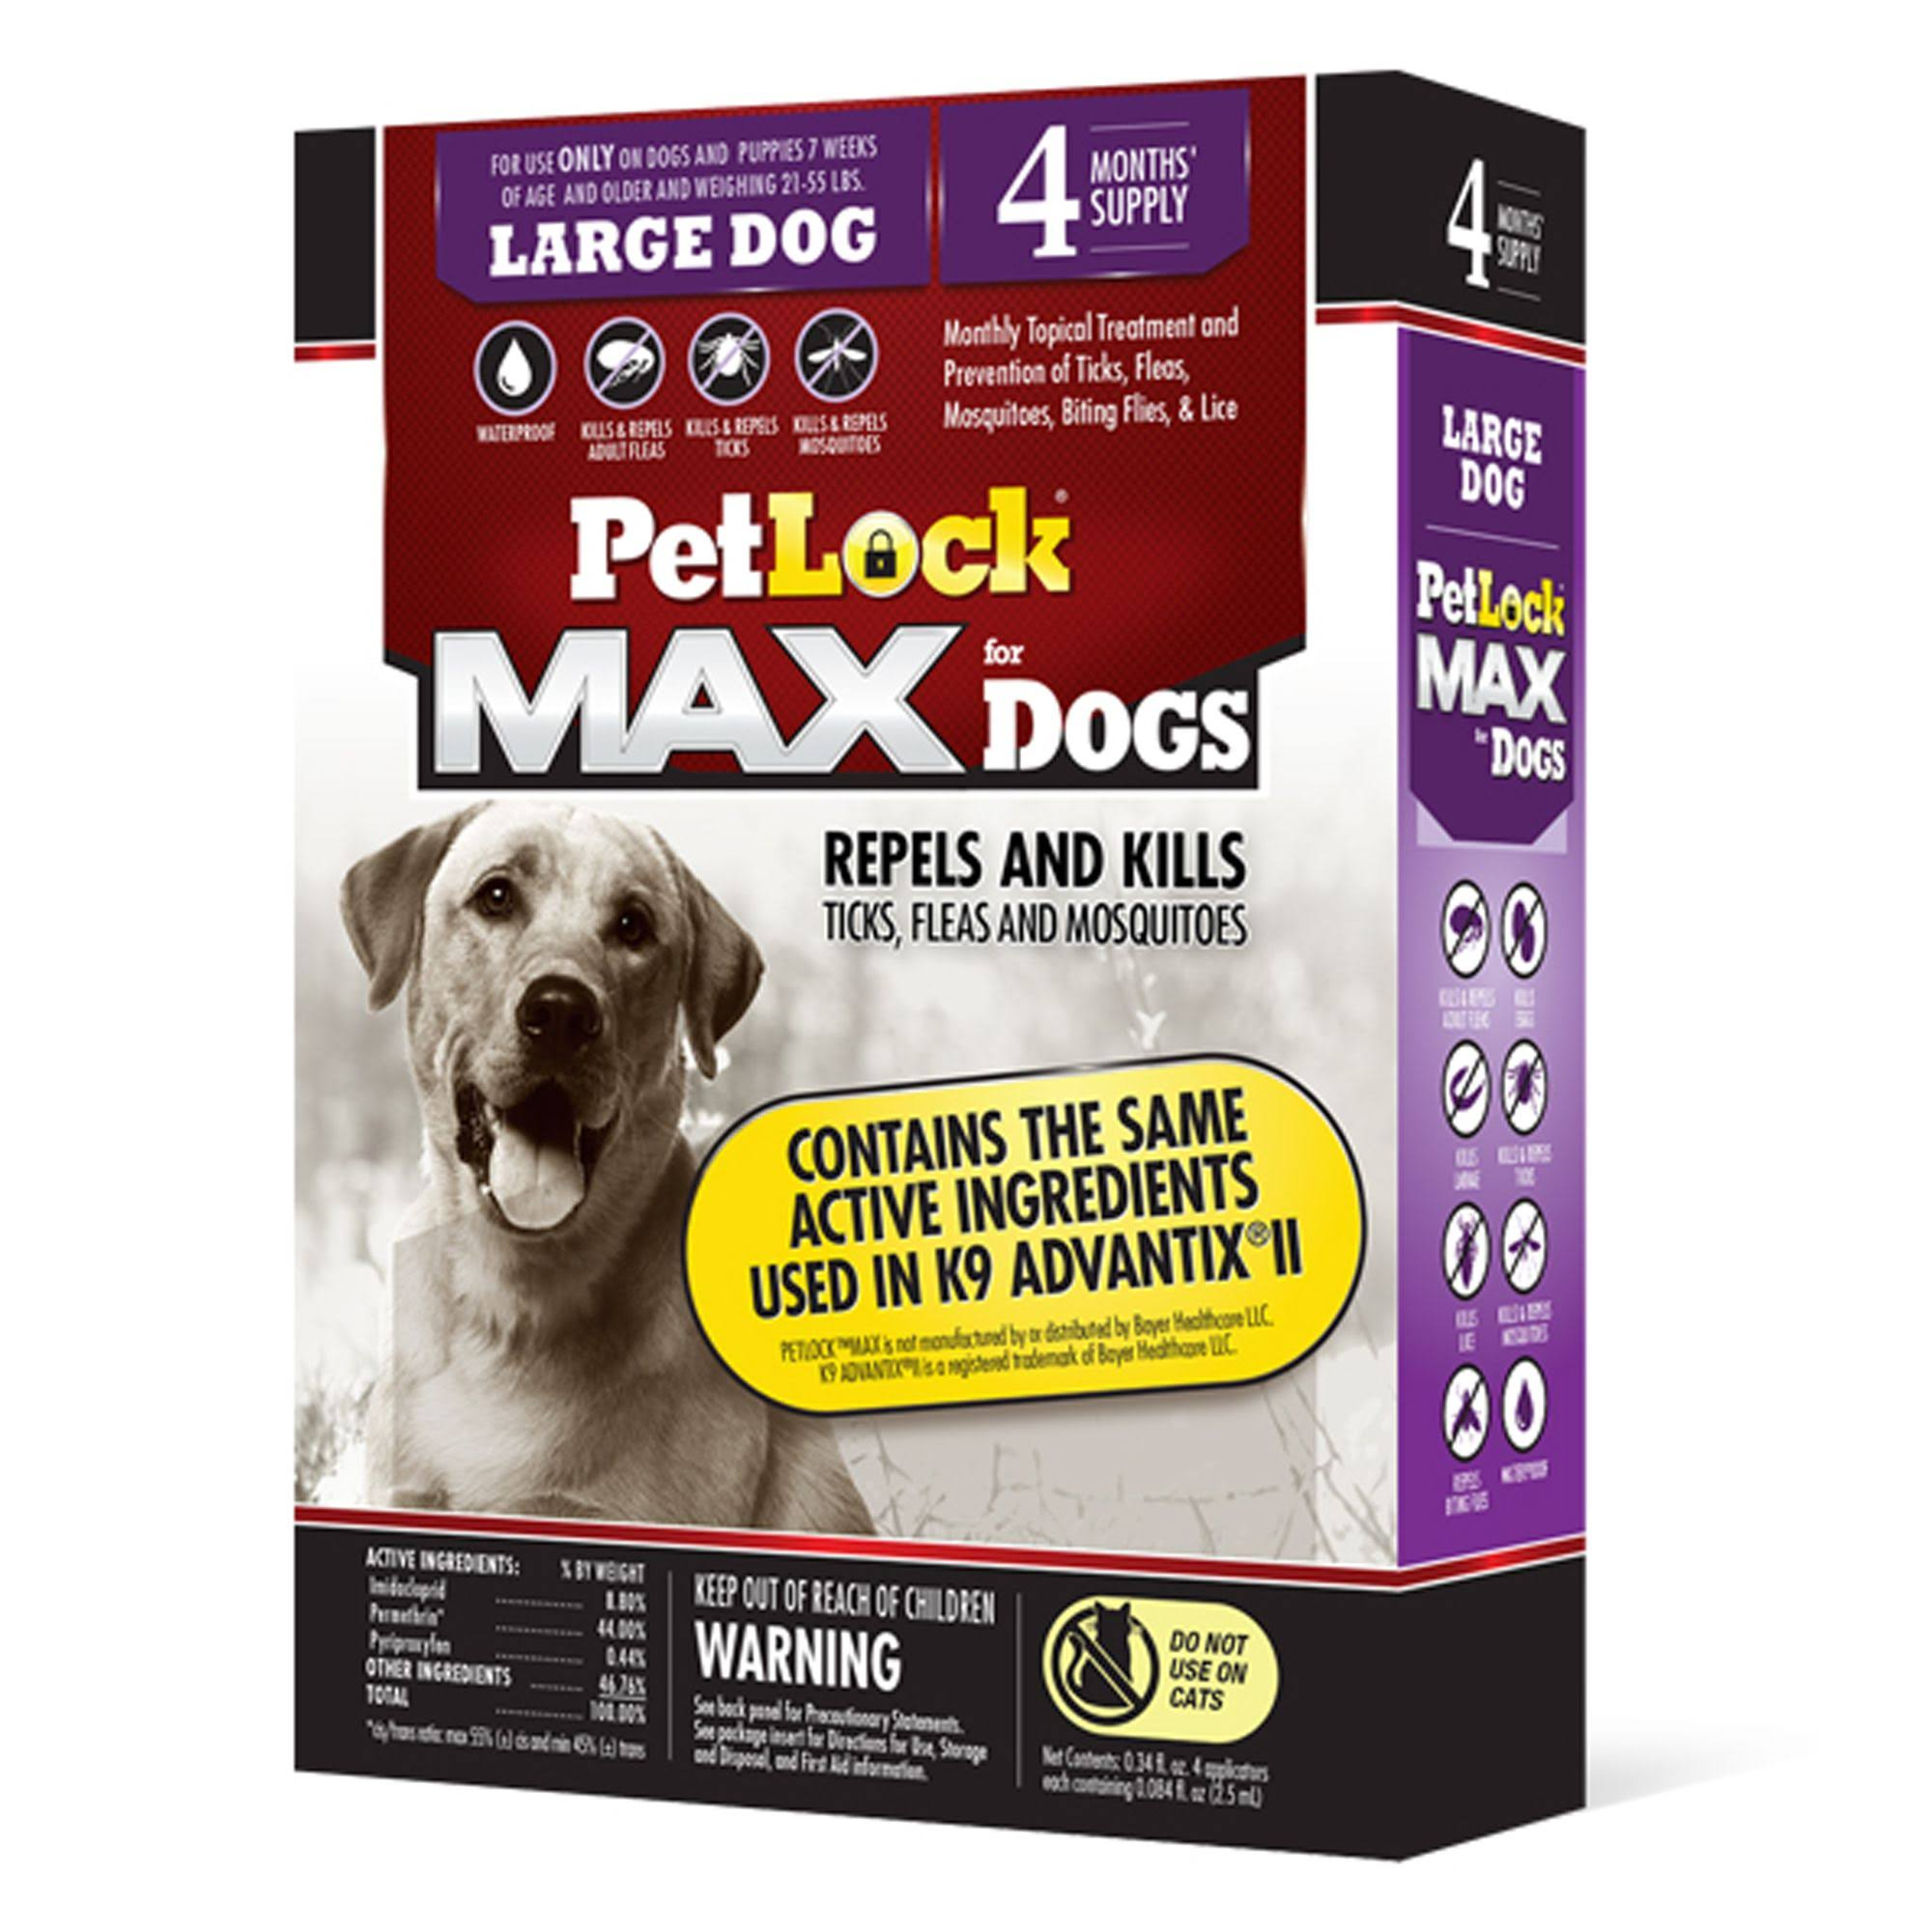 PetLock Max Flea and Tick Treatment for Dogs 21-55 lbs Size: 4 Count